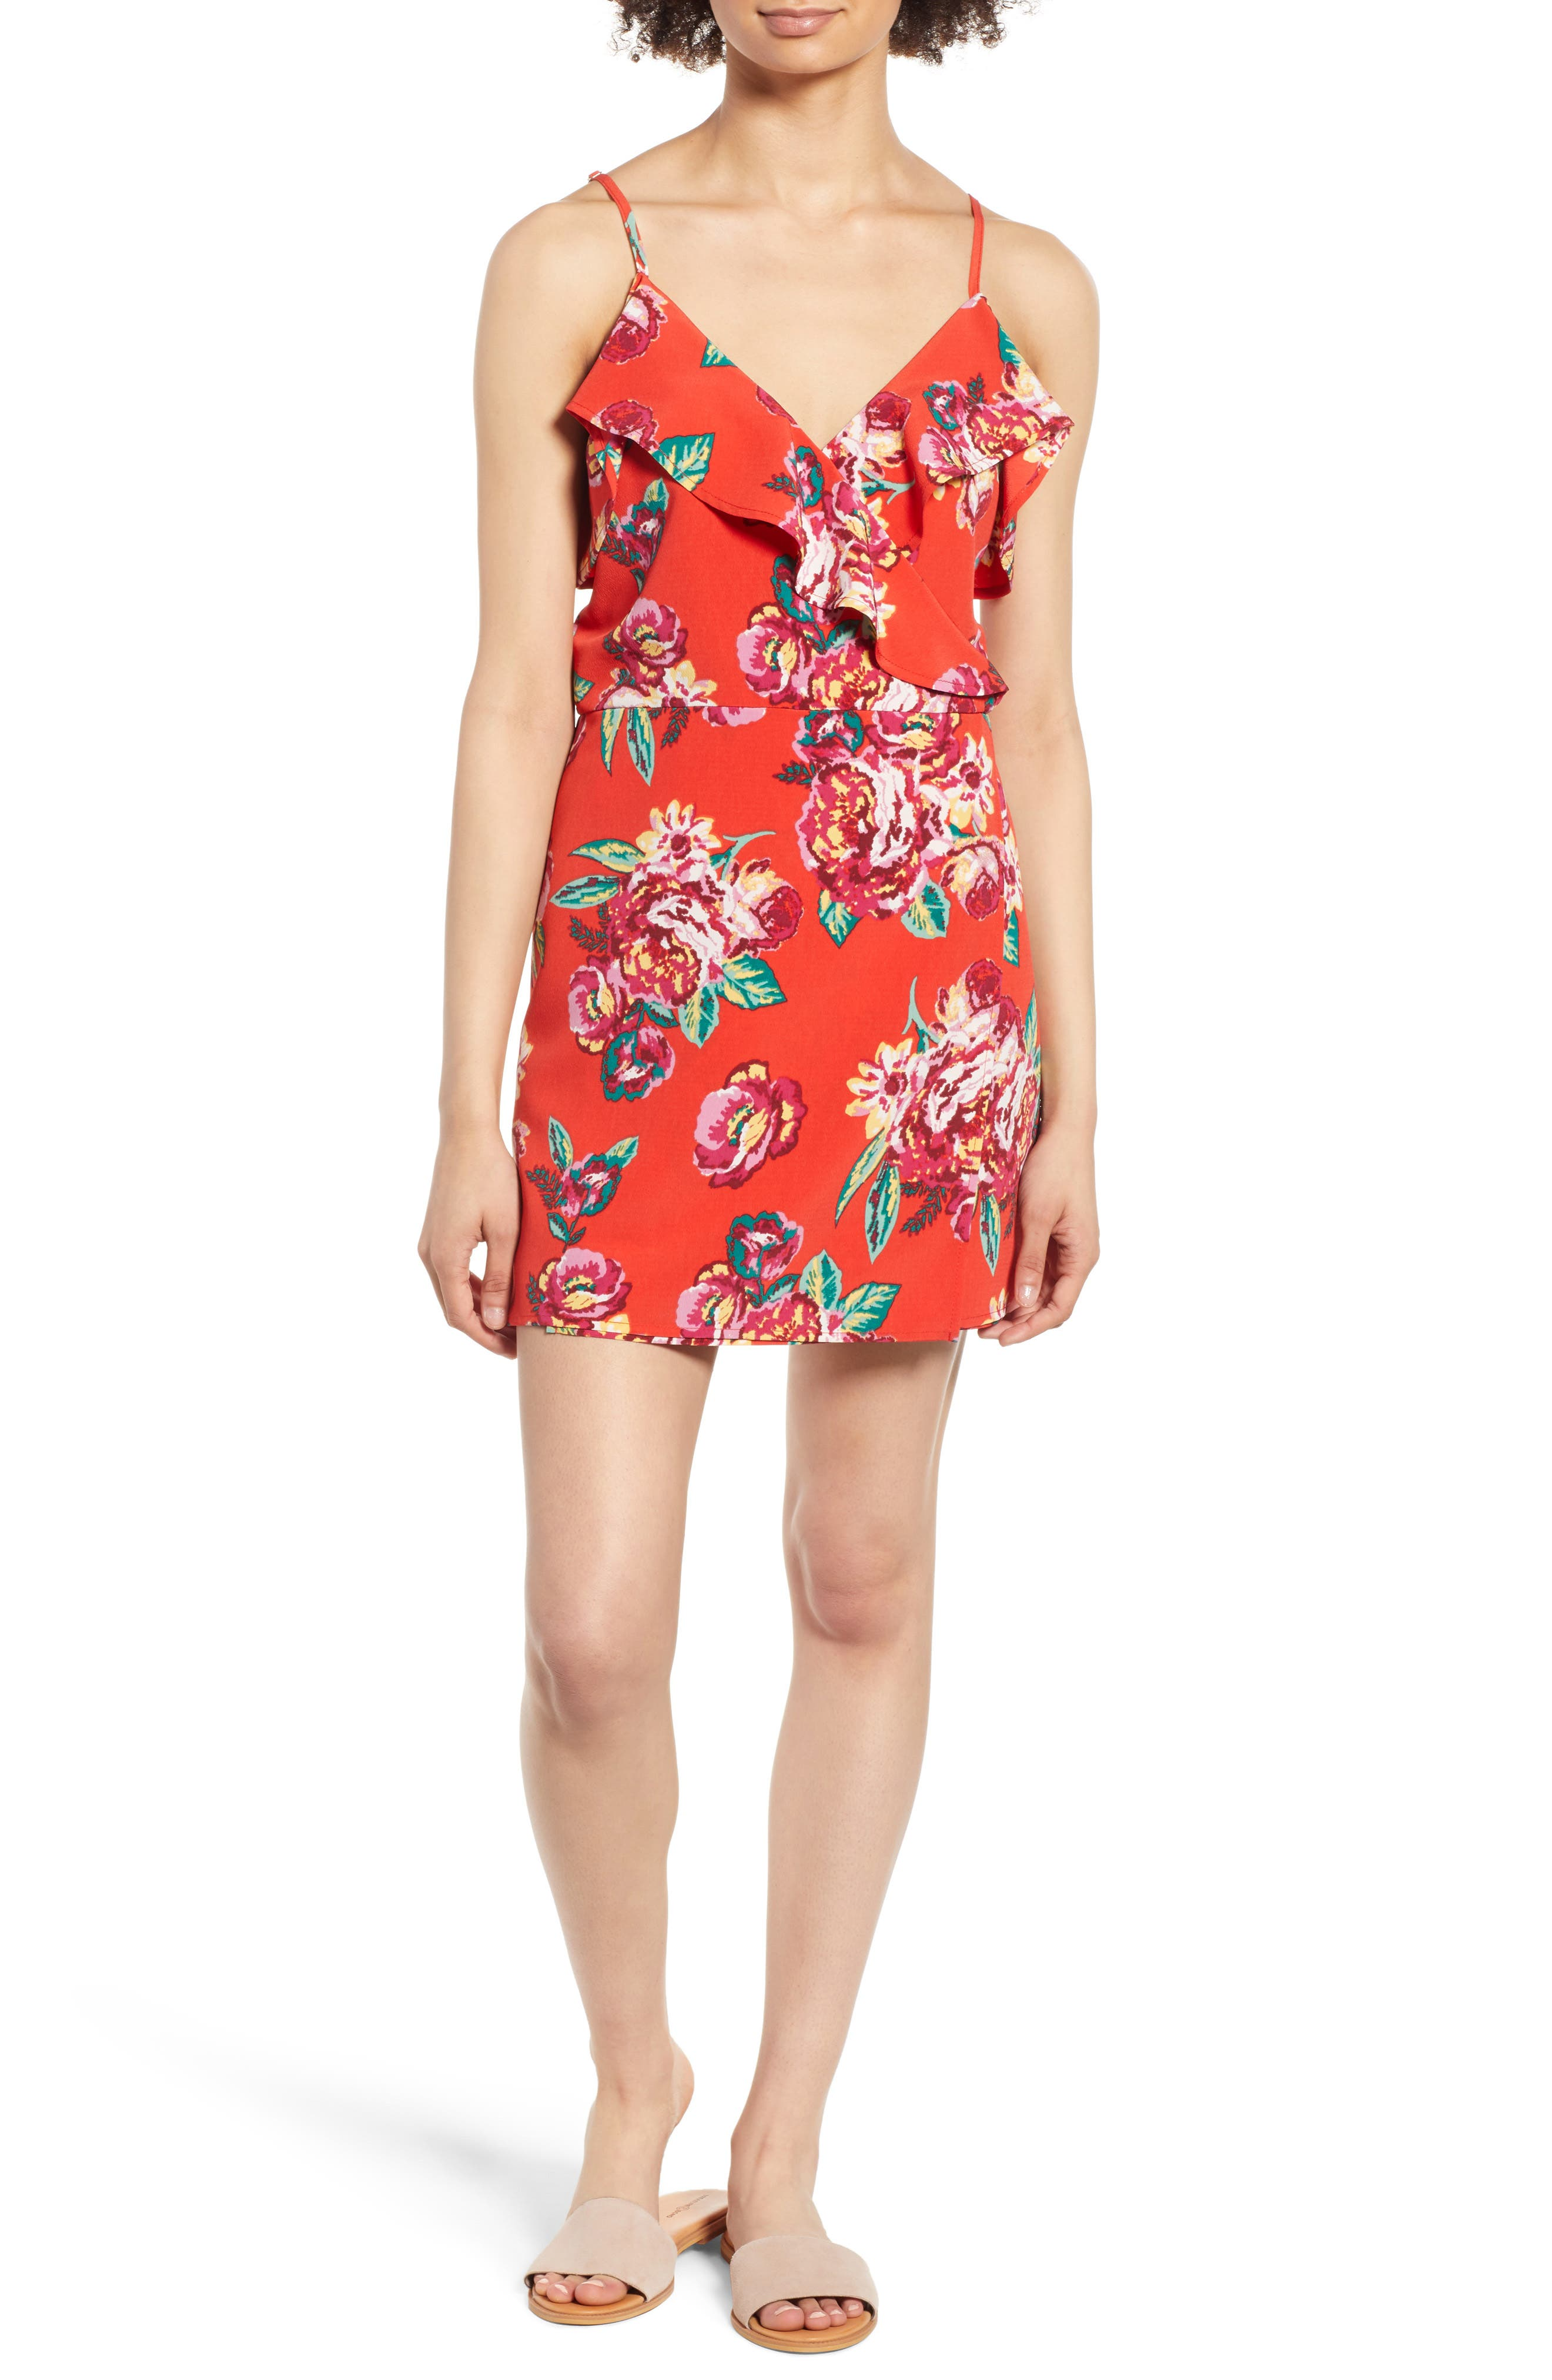 Floral Wrap Style Romper by Bp.